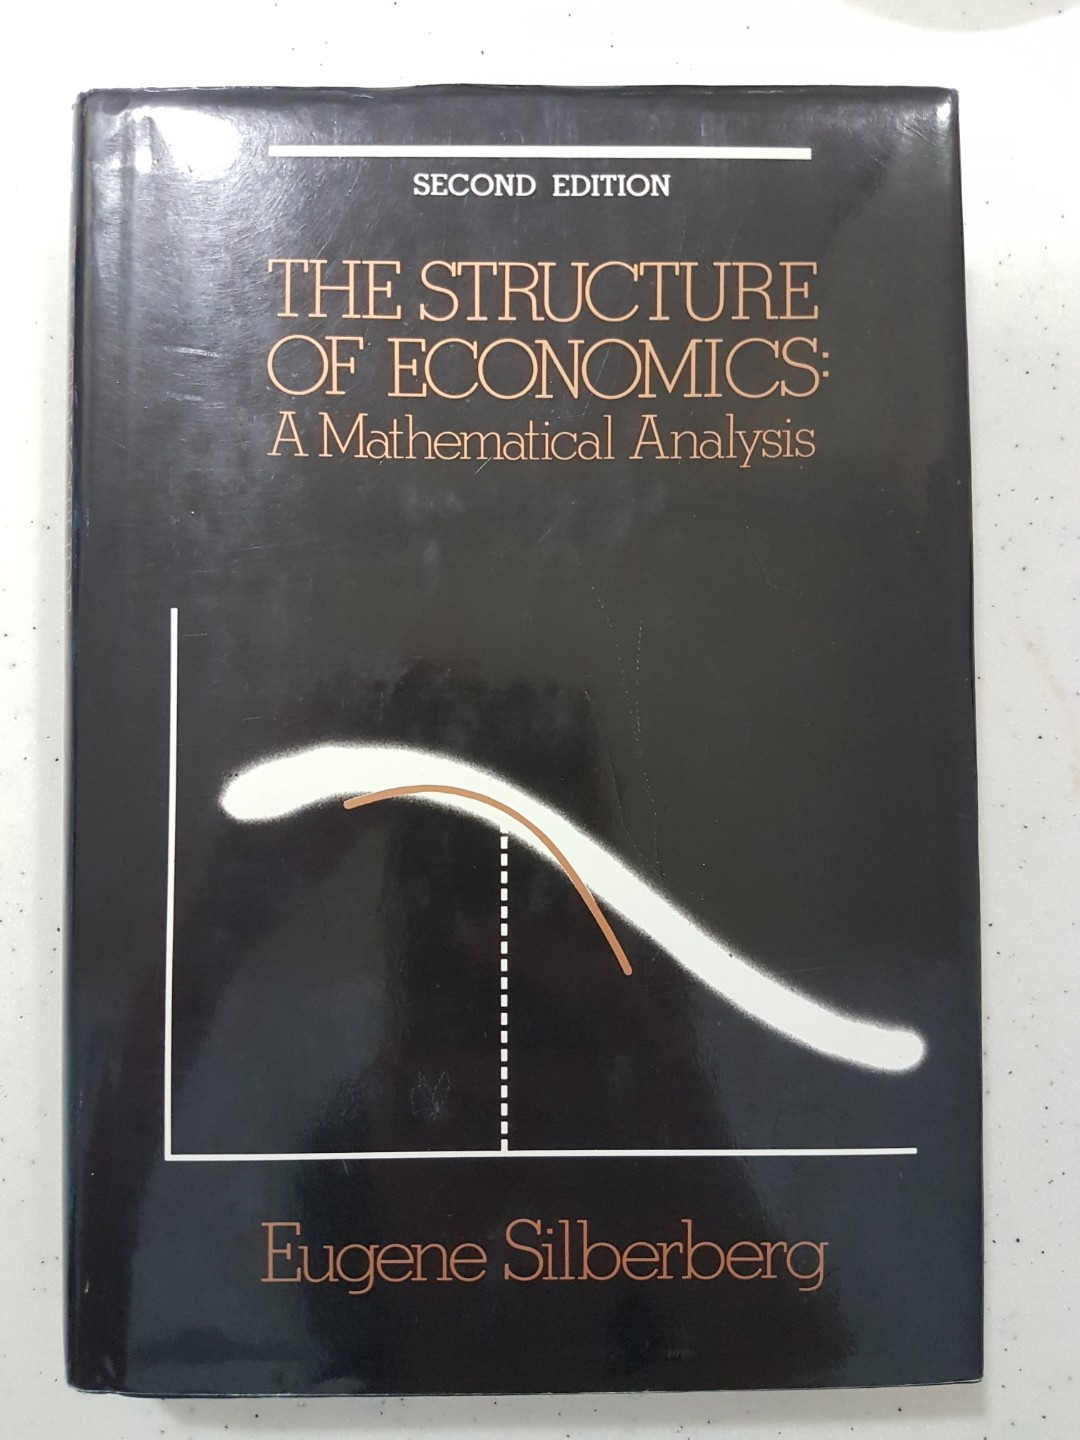 The Structure of Economics - A Mathematical Analysis